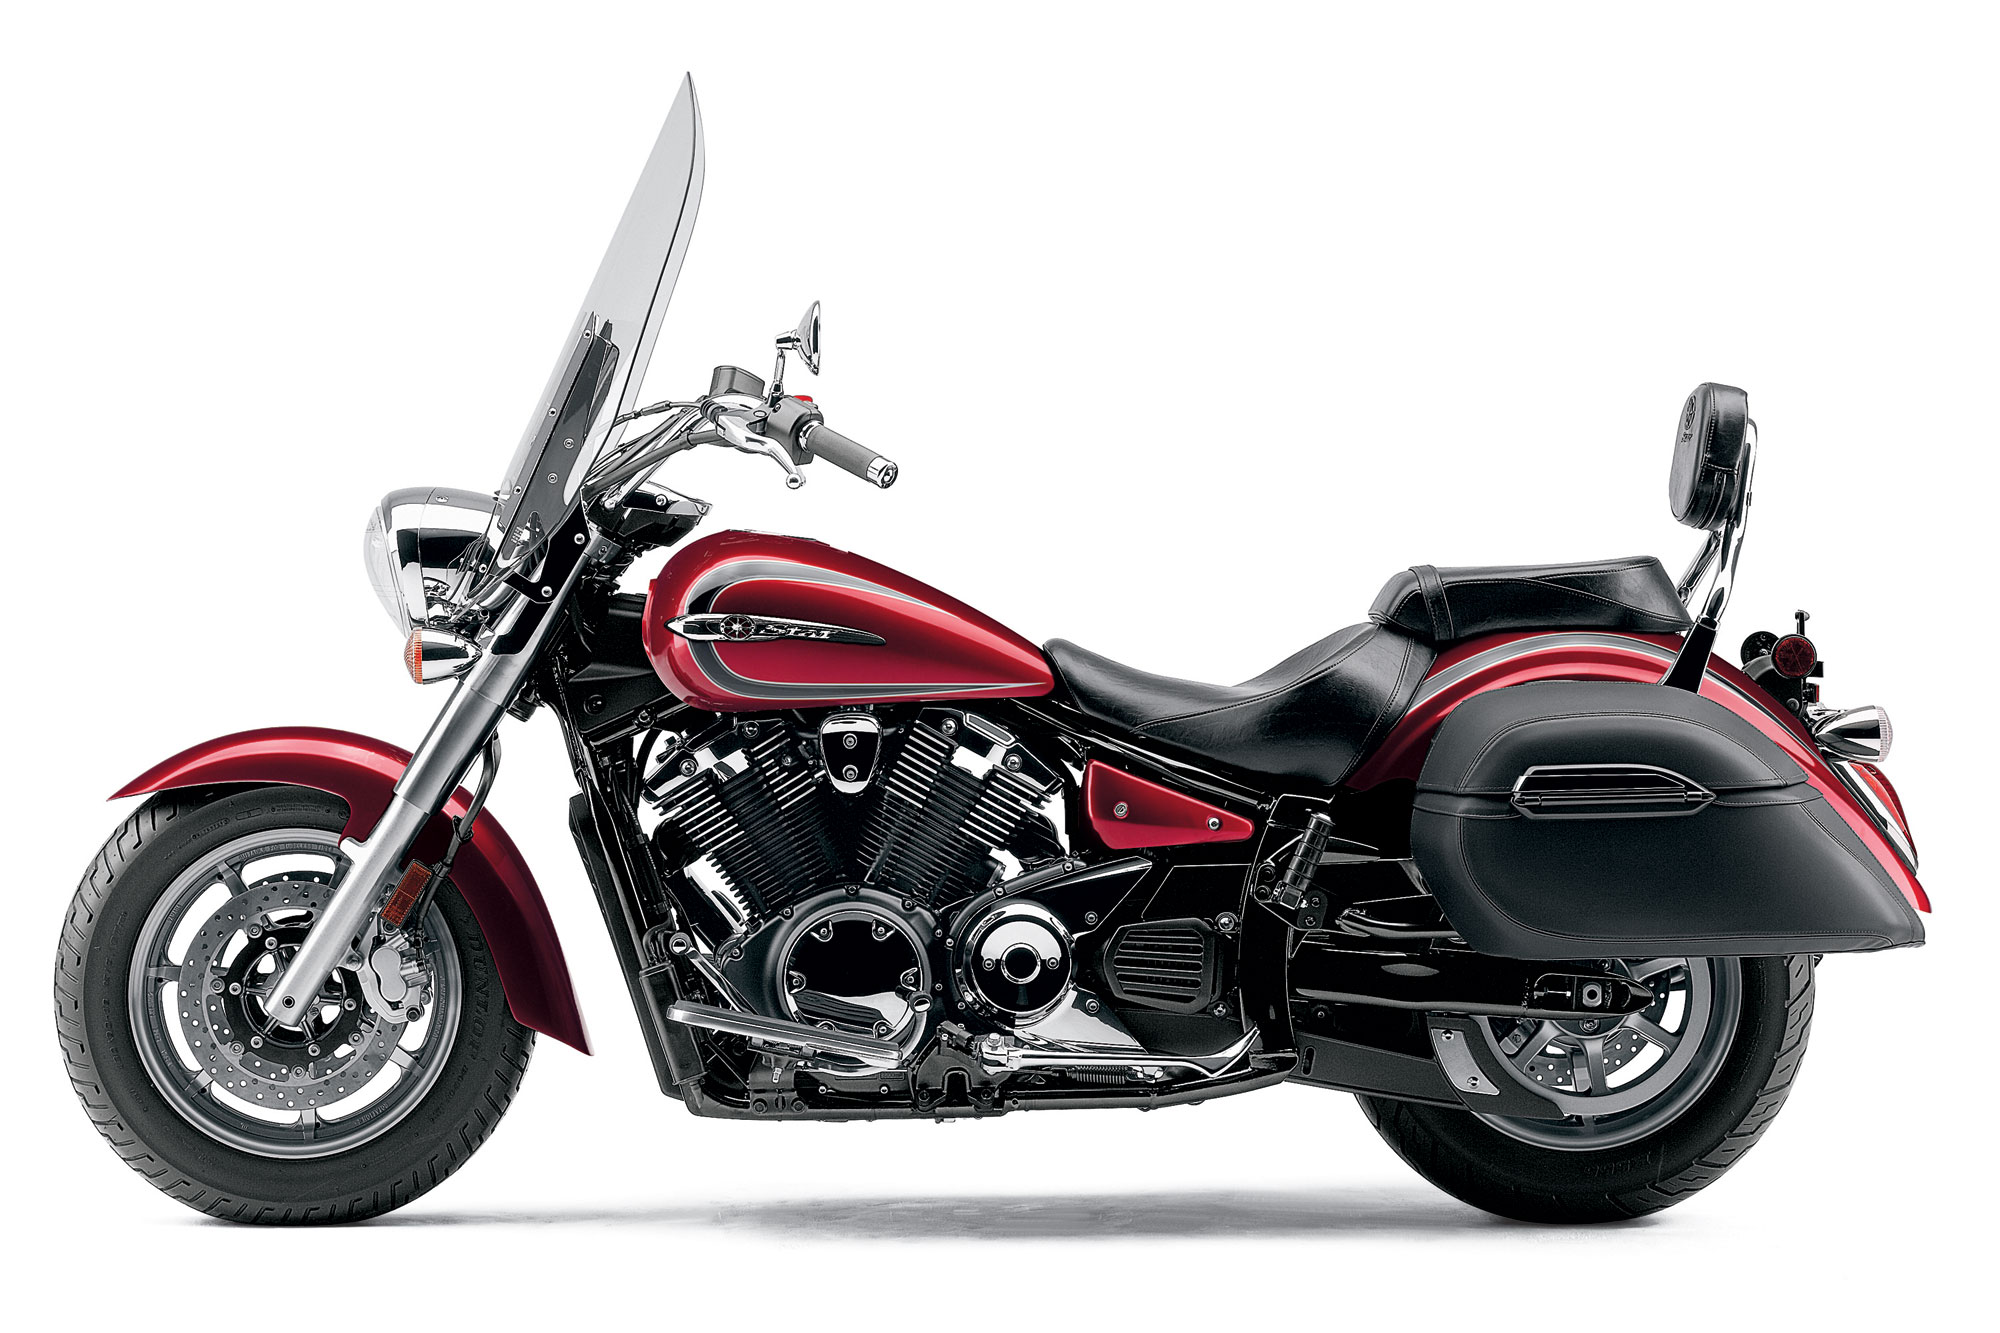 2013 Yamaha V Star 1300 Tourer Review